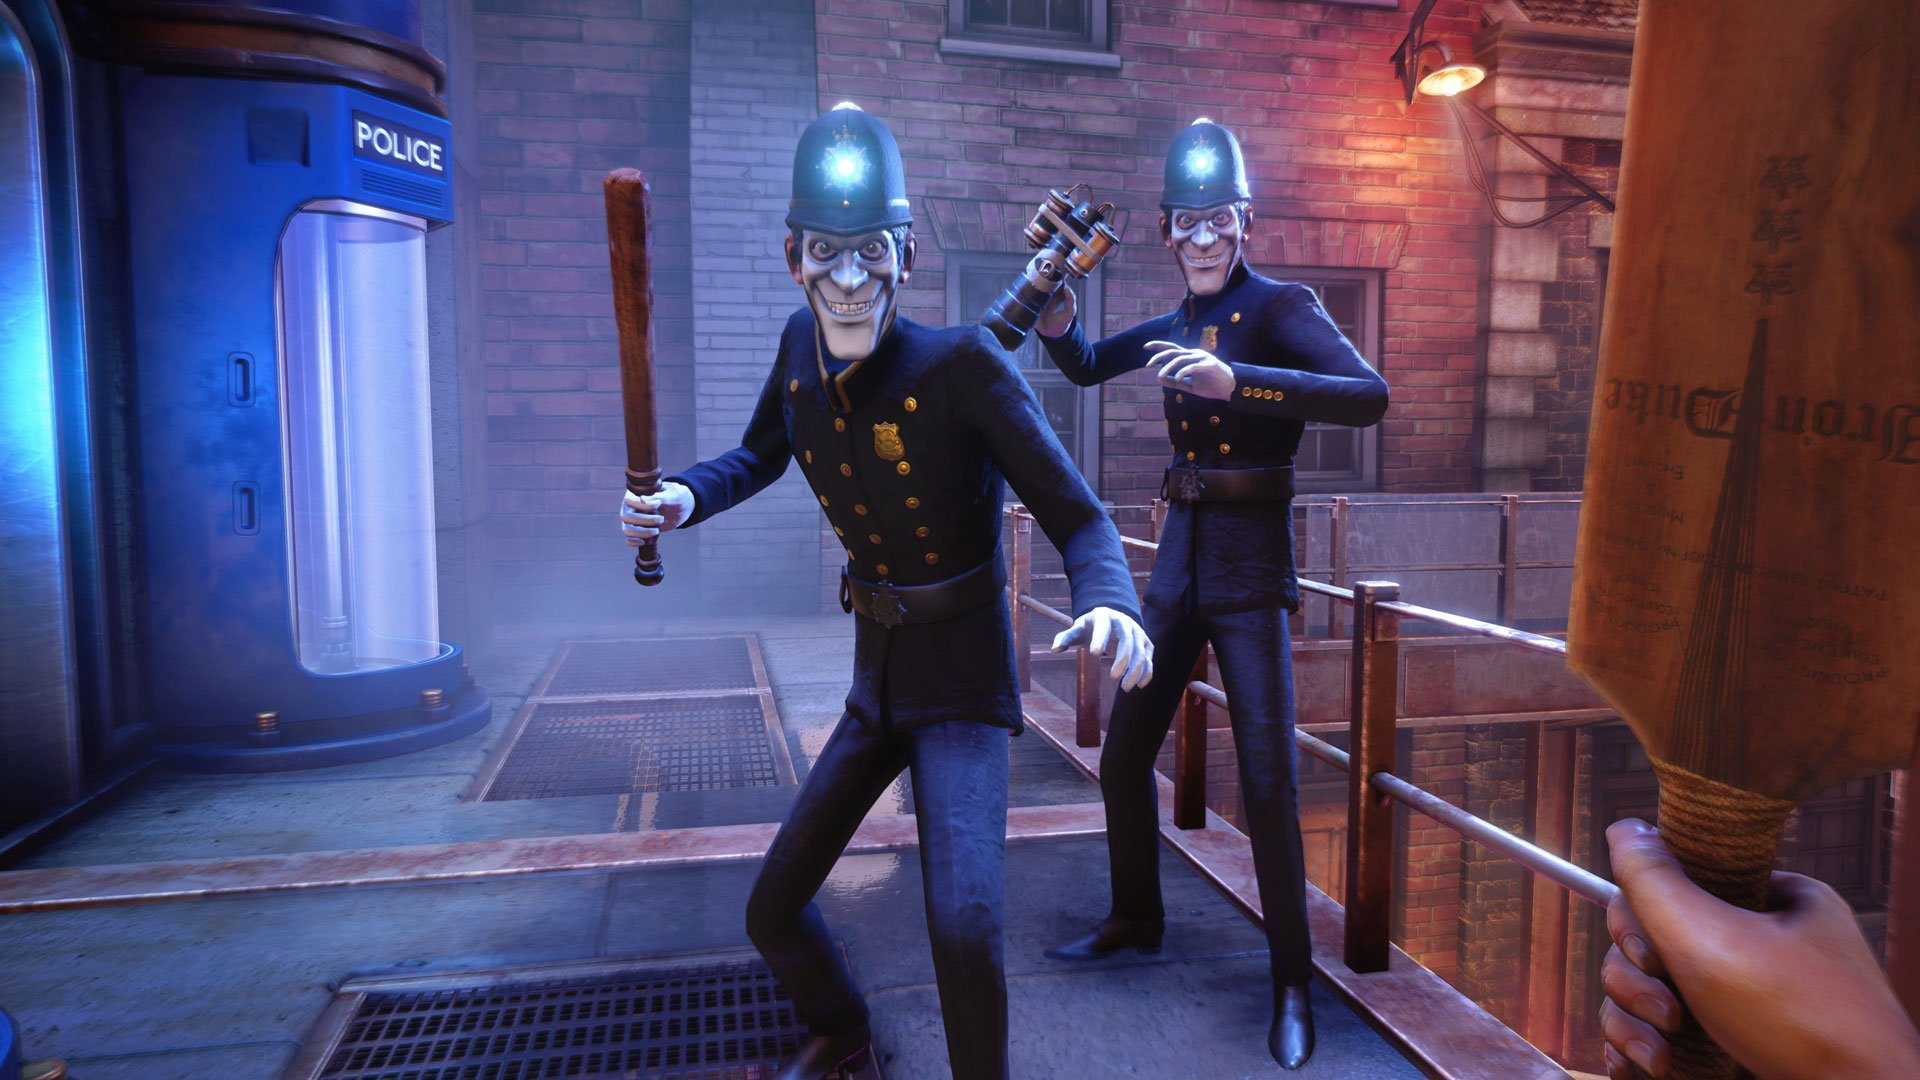 'We Happy Few' Set For Release On August 10th